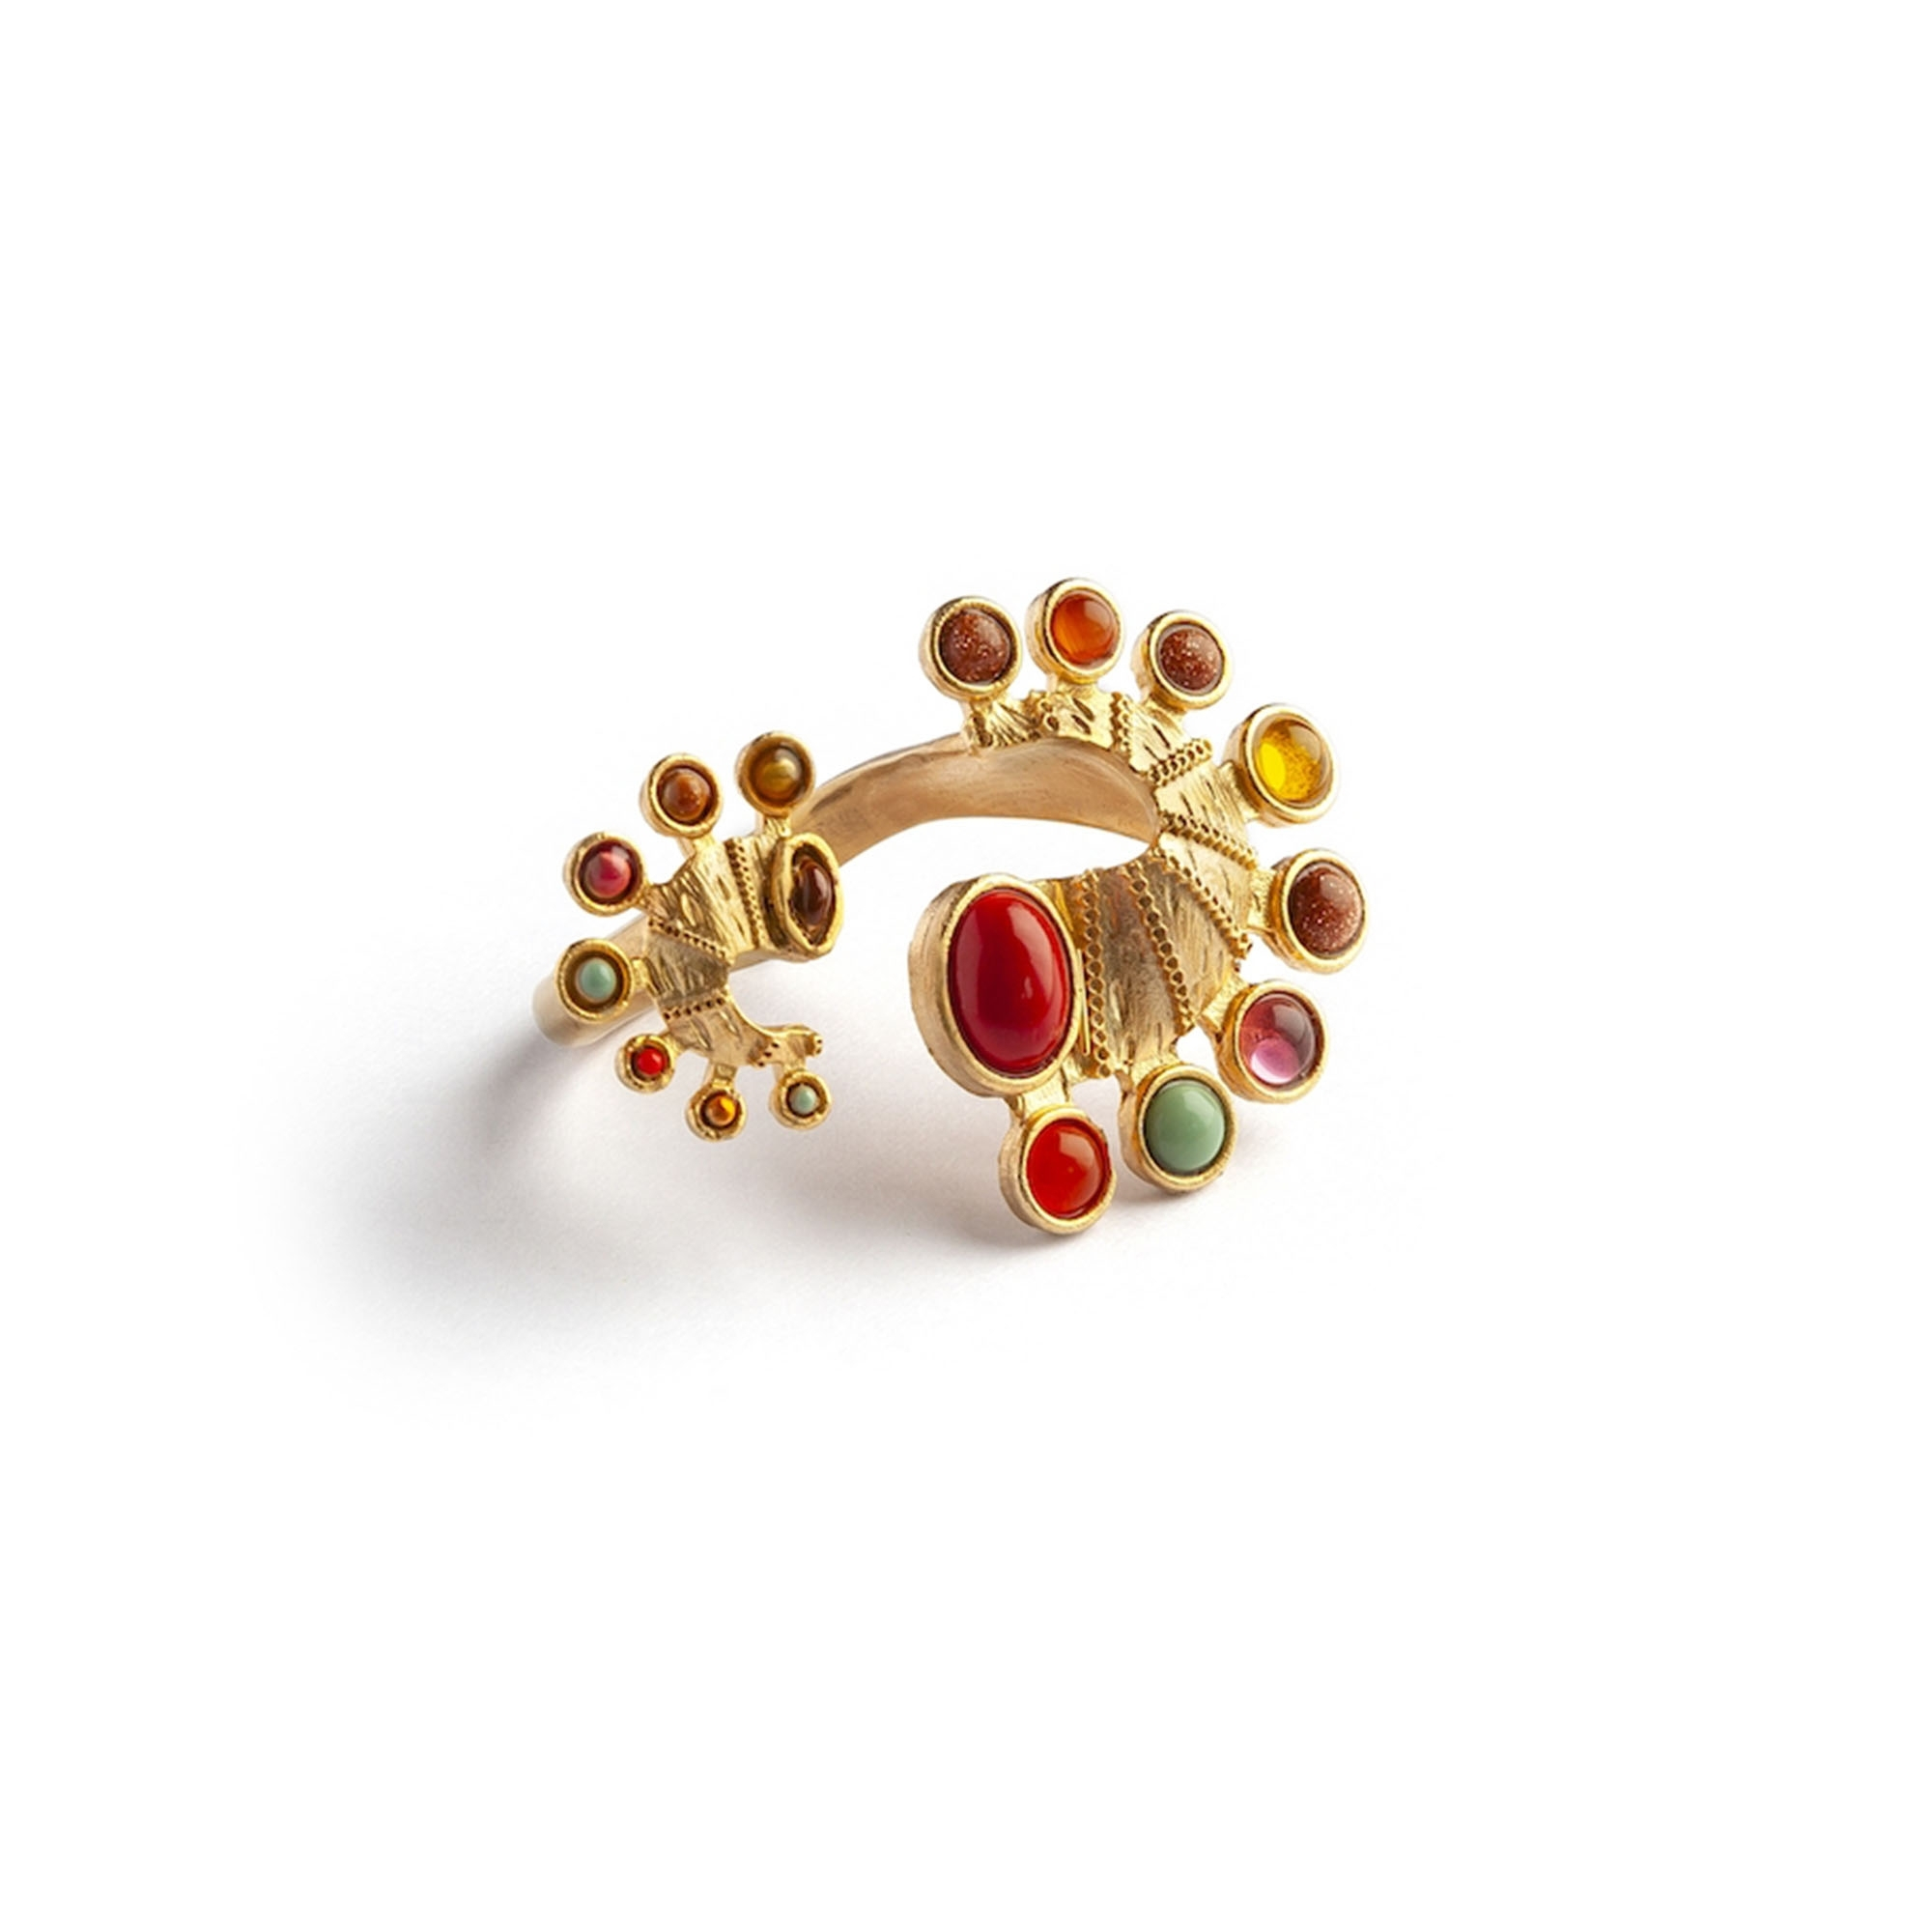 Seahorse Short Luxury Ring by Sonia Petroff on curated-crowd.com